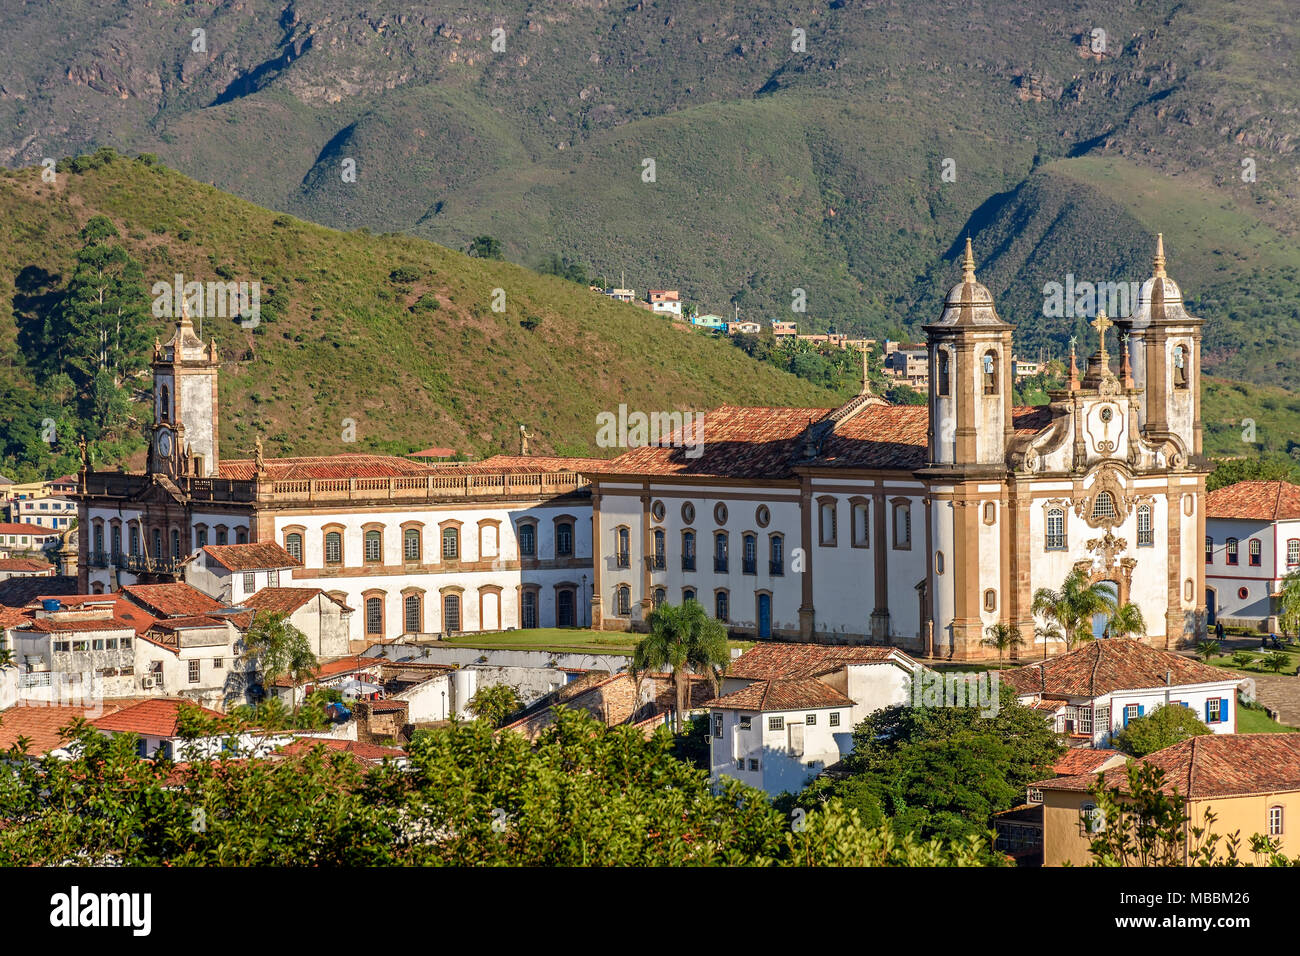 Top view of the center of the historic Ouro Preto city in Minas Gerais, Brazil with its famous churches and old buildings with hills in background - Stock Image